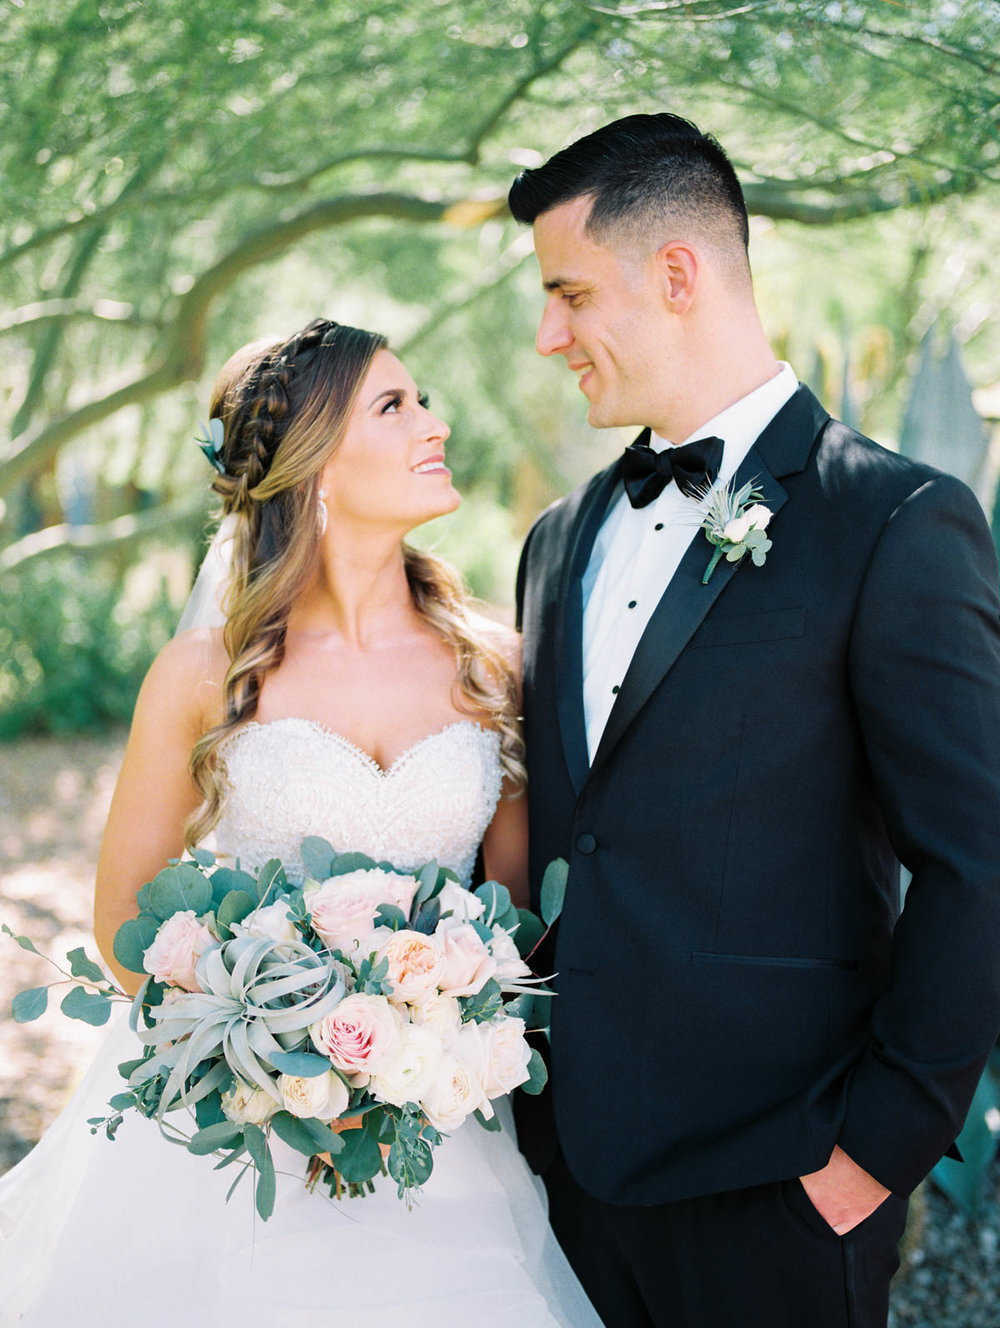 Joyful bride and groom captured by Tucson Wedding Photographers Betsy & John